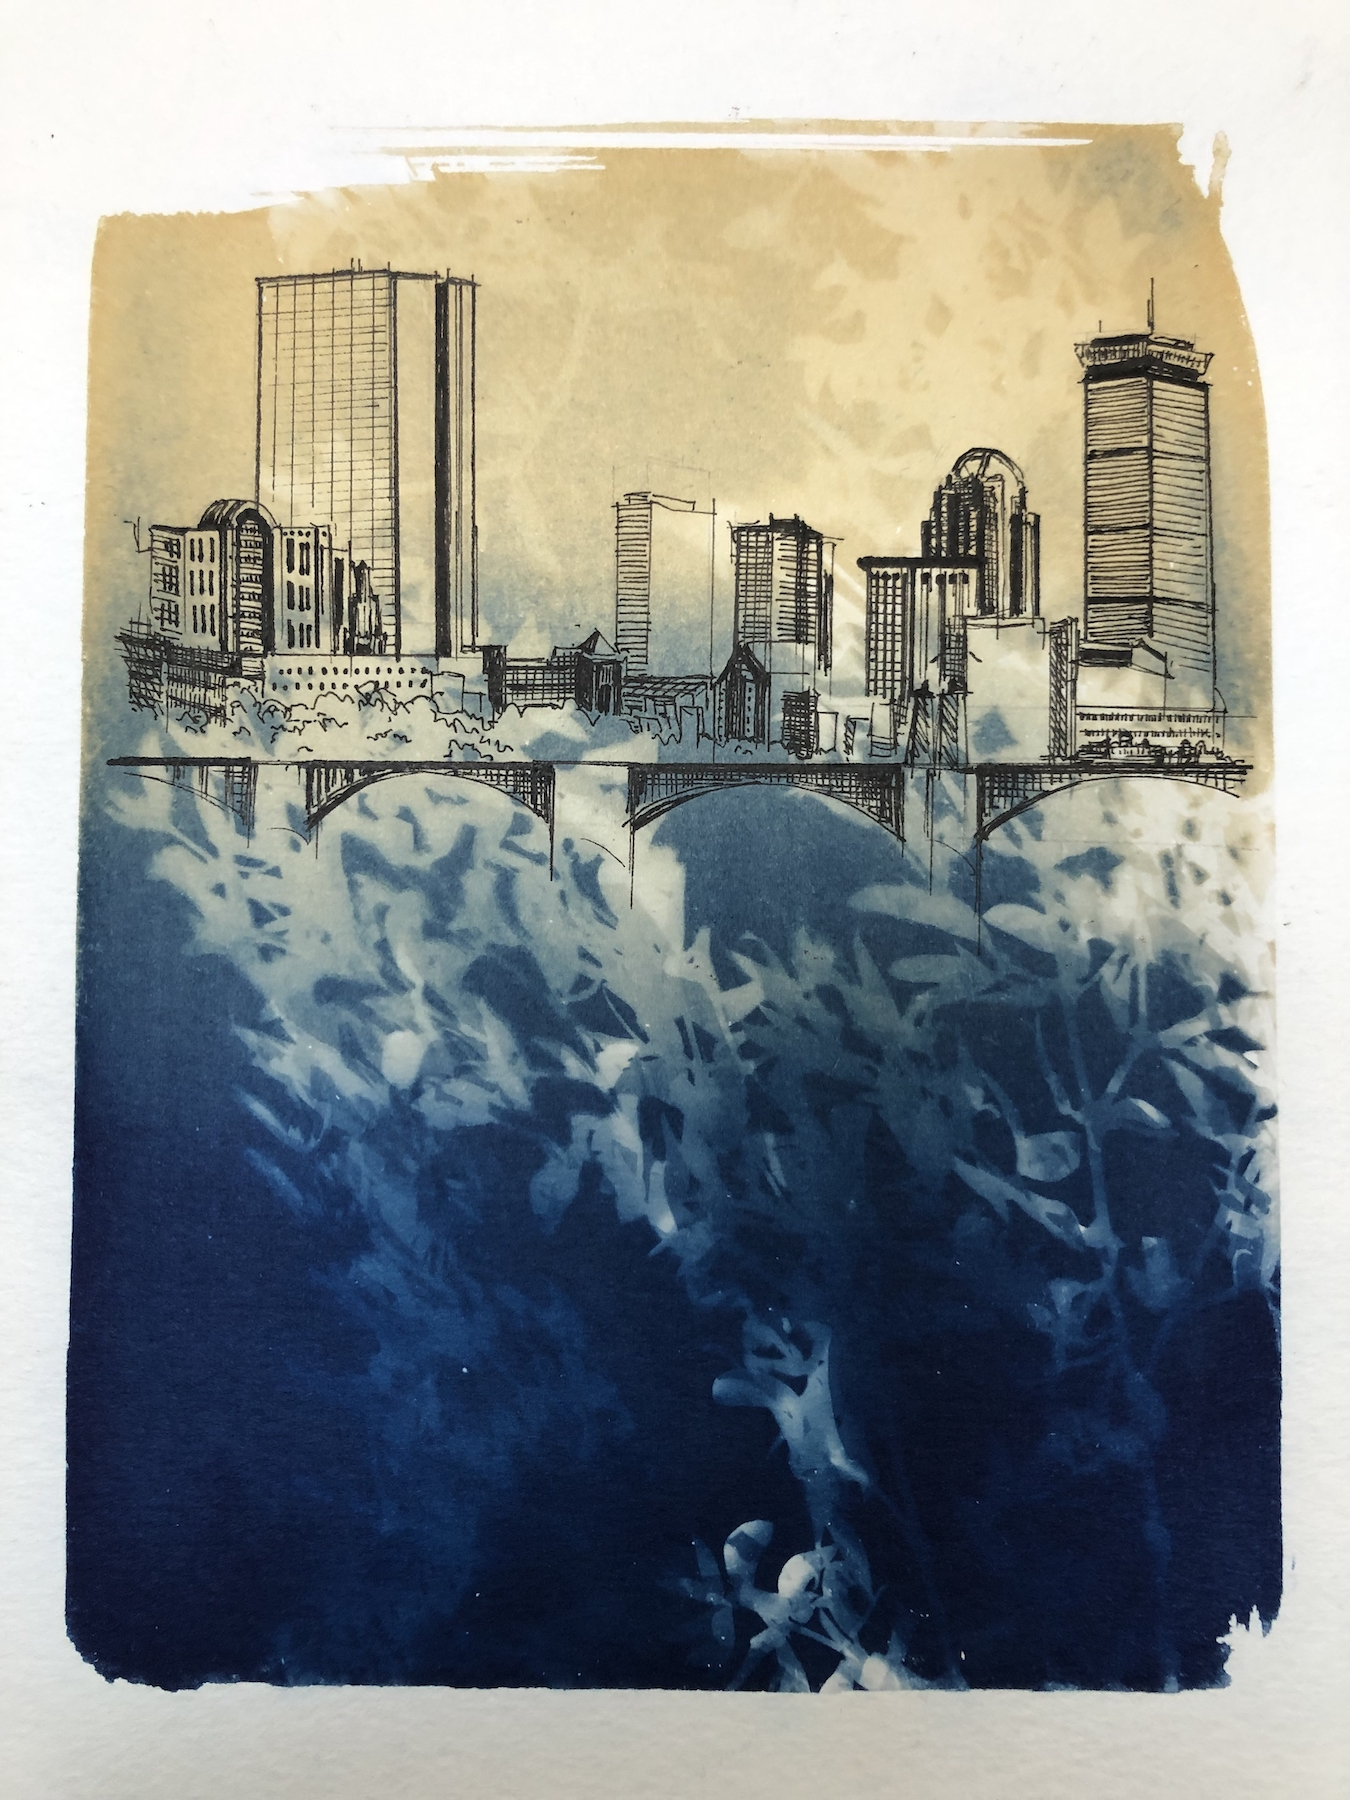 Marie Craig,  Entanglement (Boston sea level rise),  pen and ink on toned cyanotype photograph, 6 x 8 inches.